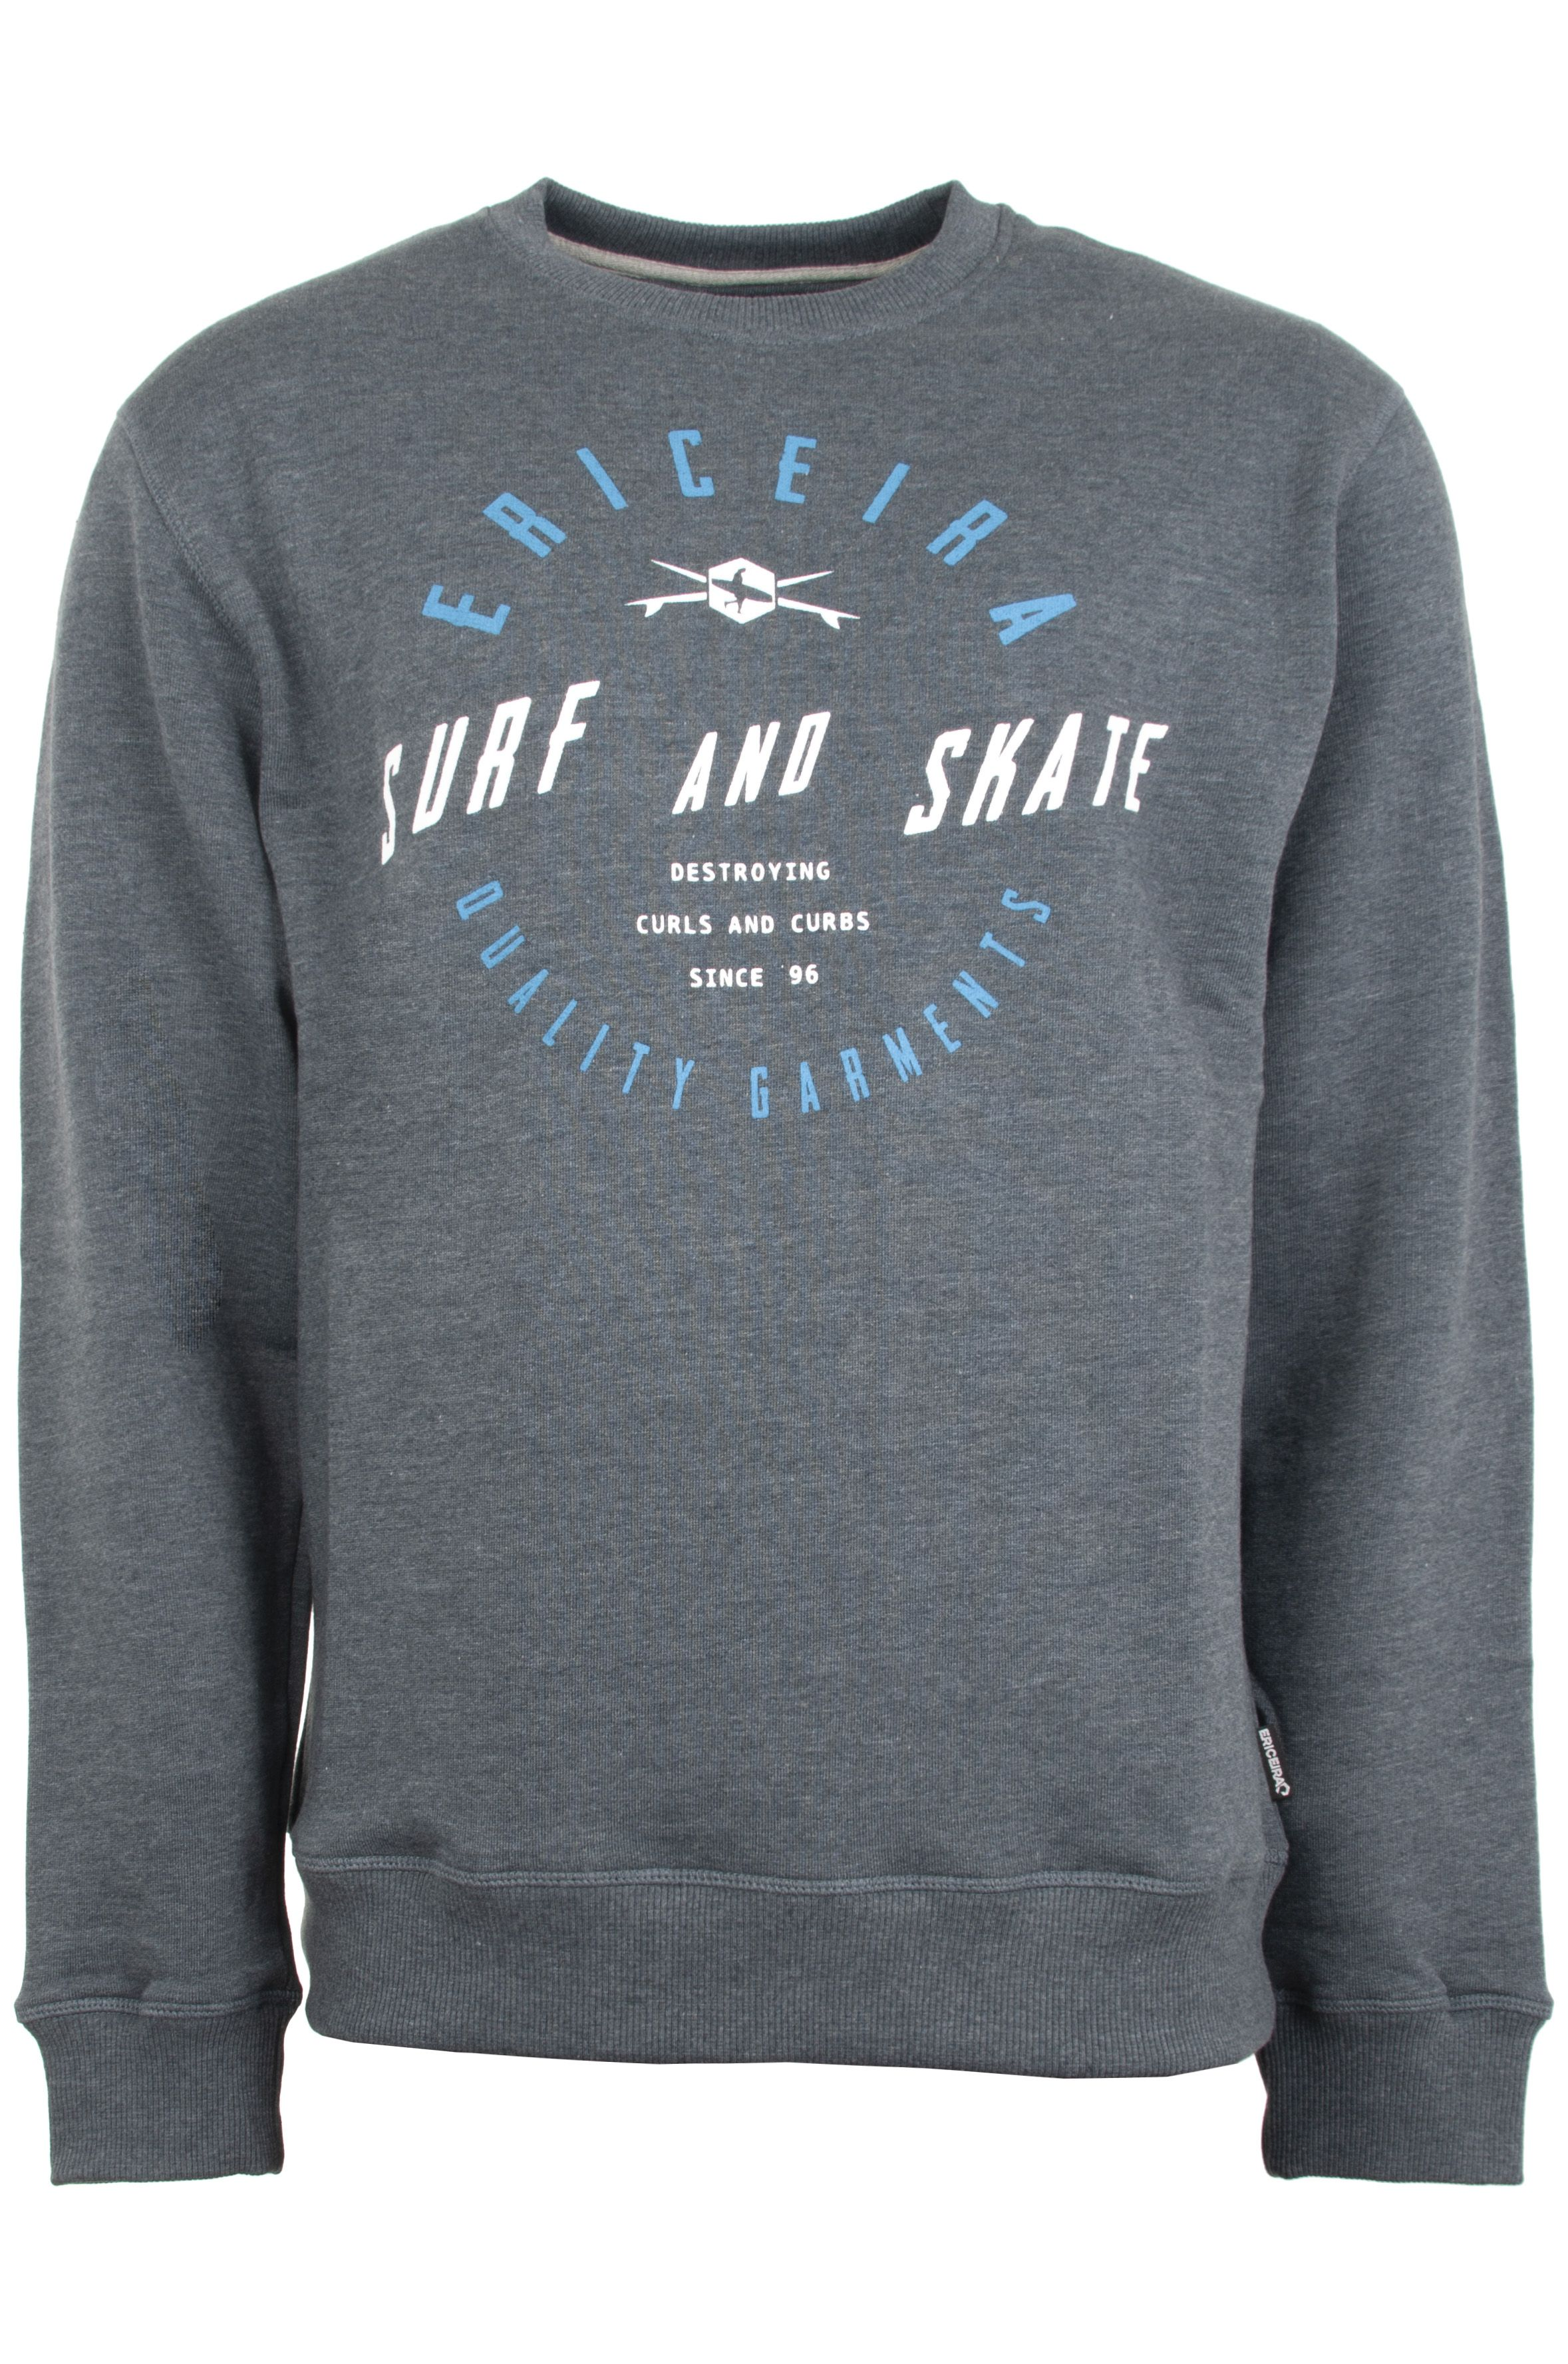 Sweat Basica Ericeira Surf Skate BINGUIN Navy Heather